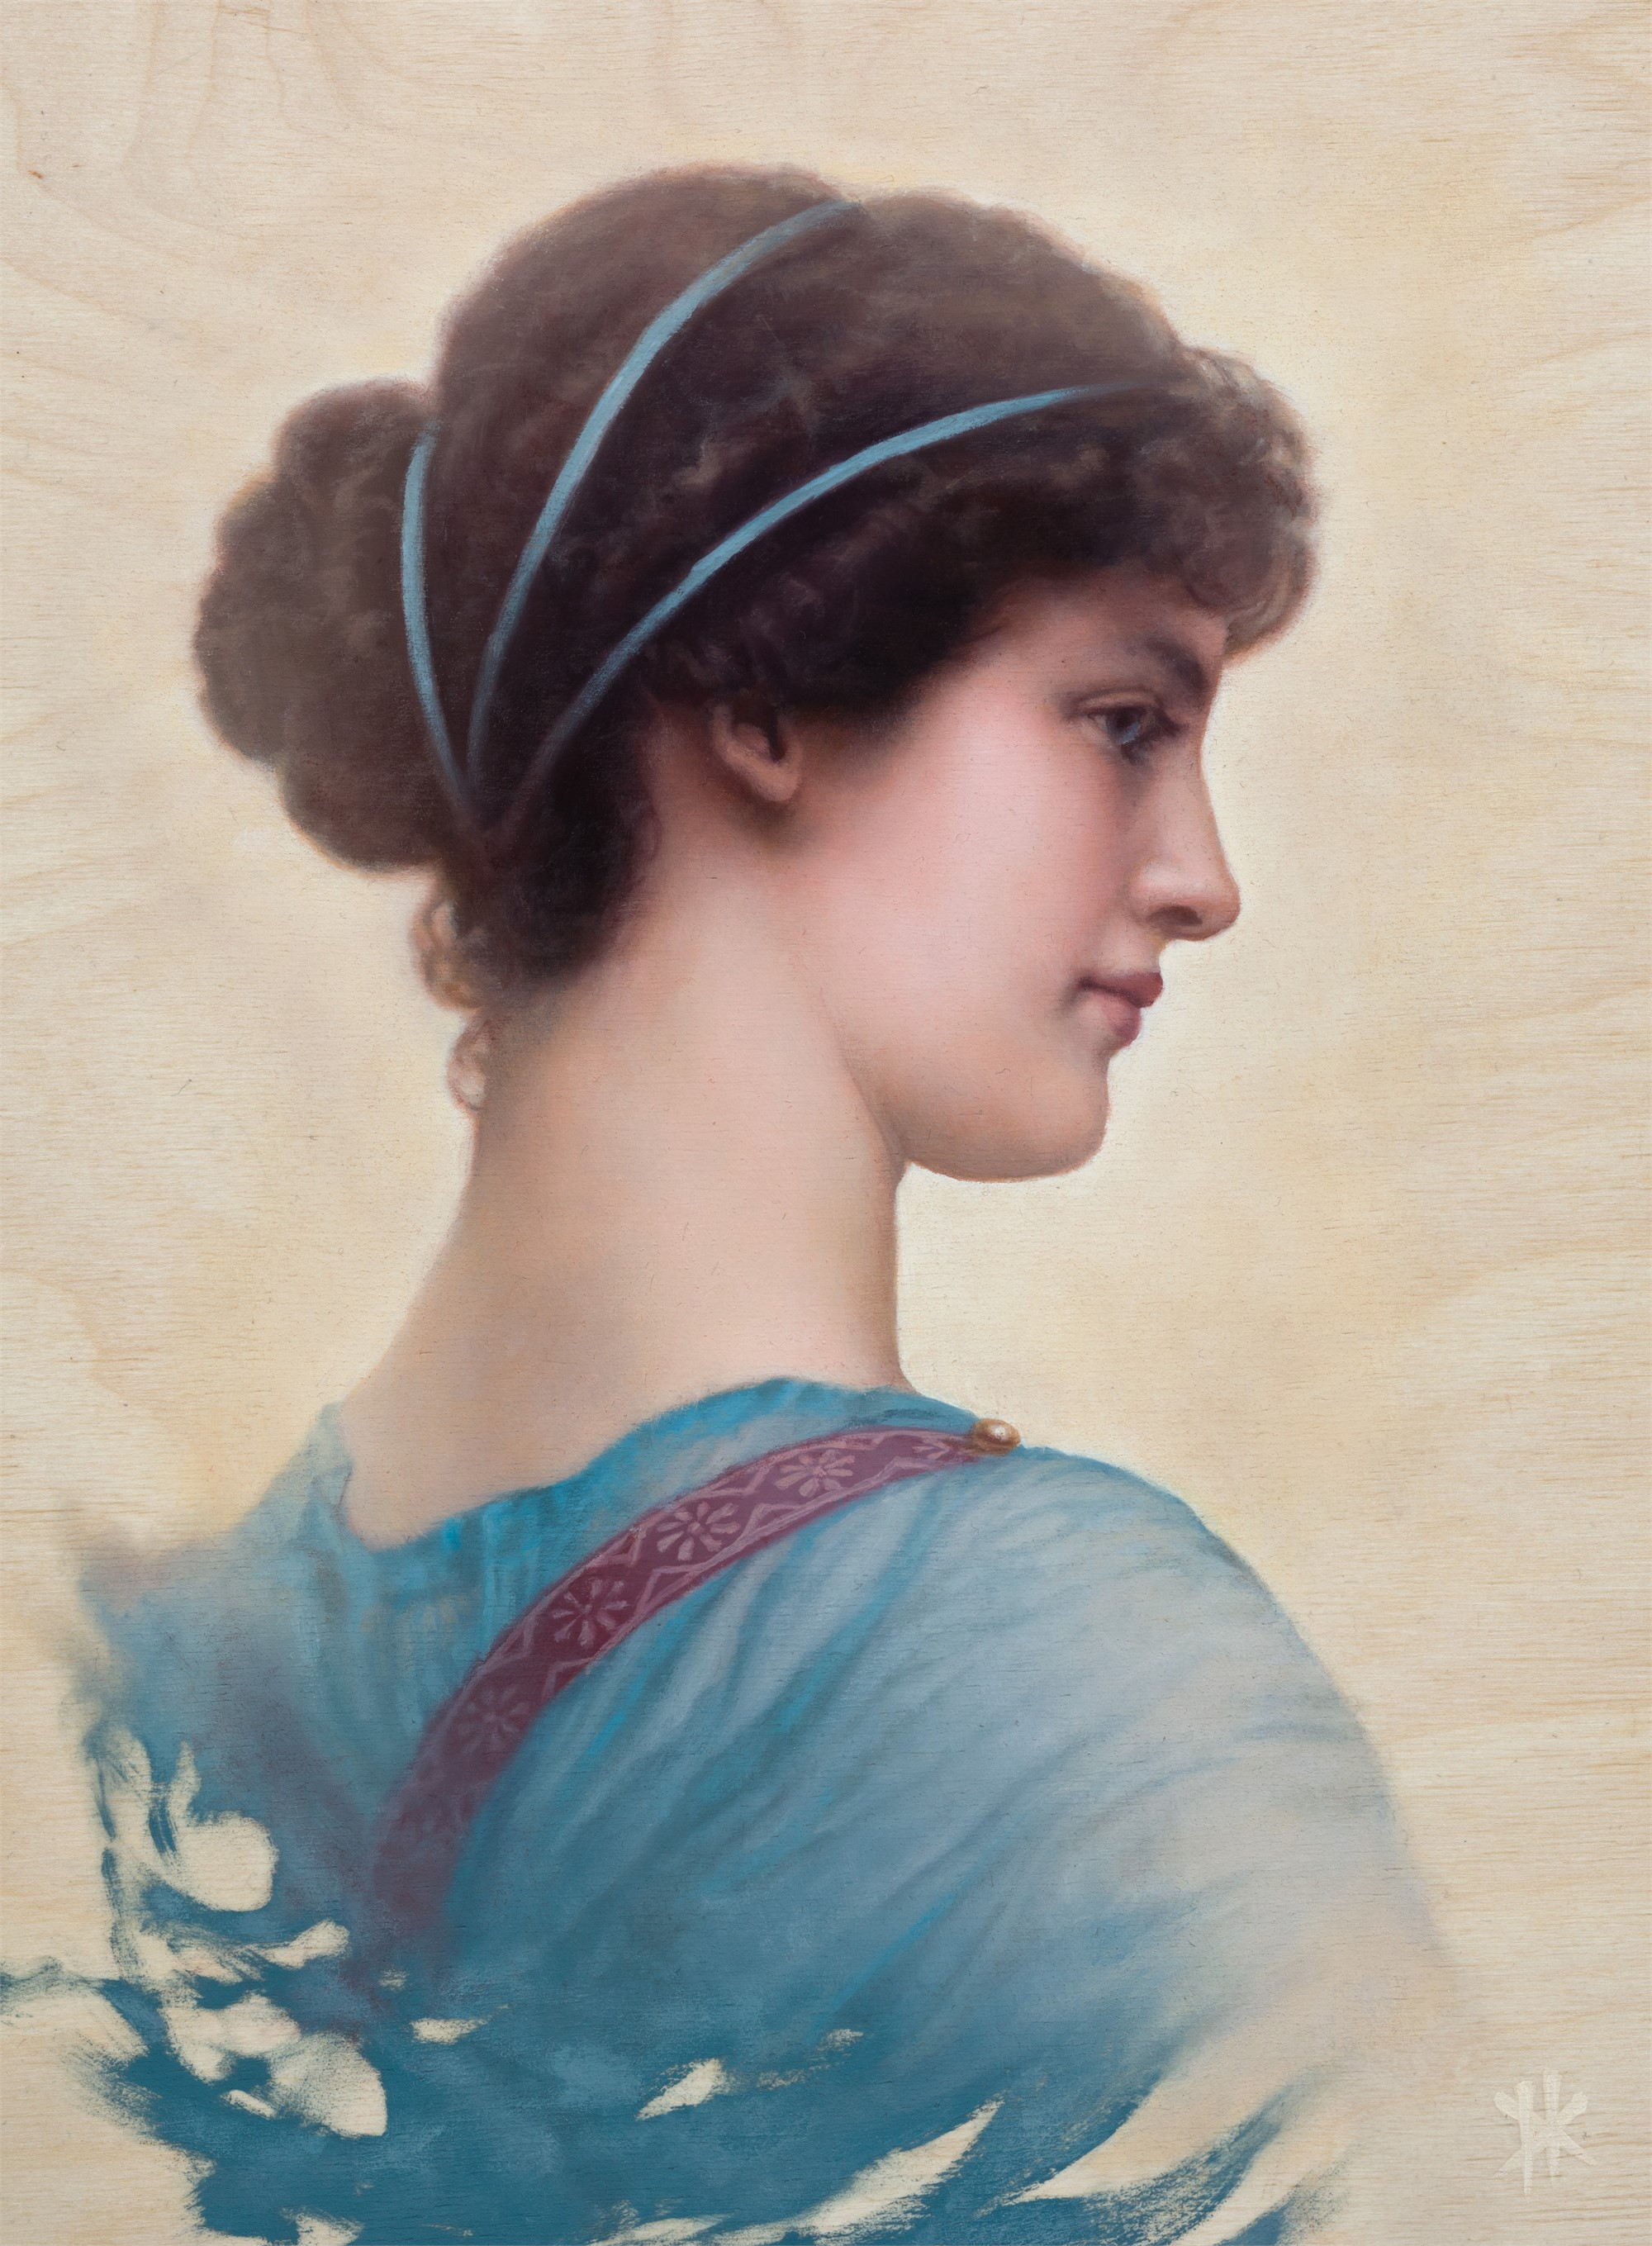 A Classical Beauty (From Godward) by Patrick Kramer